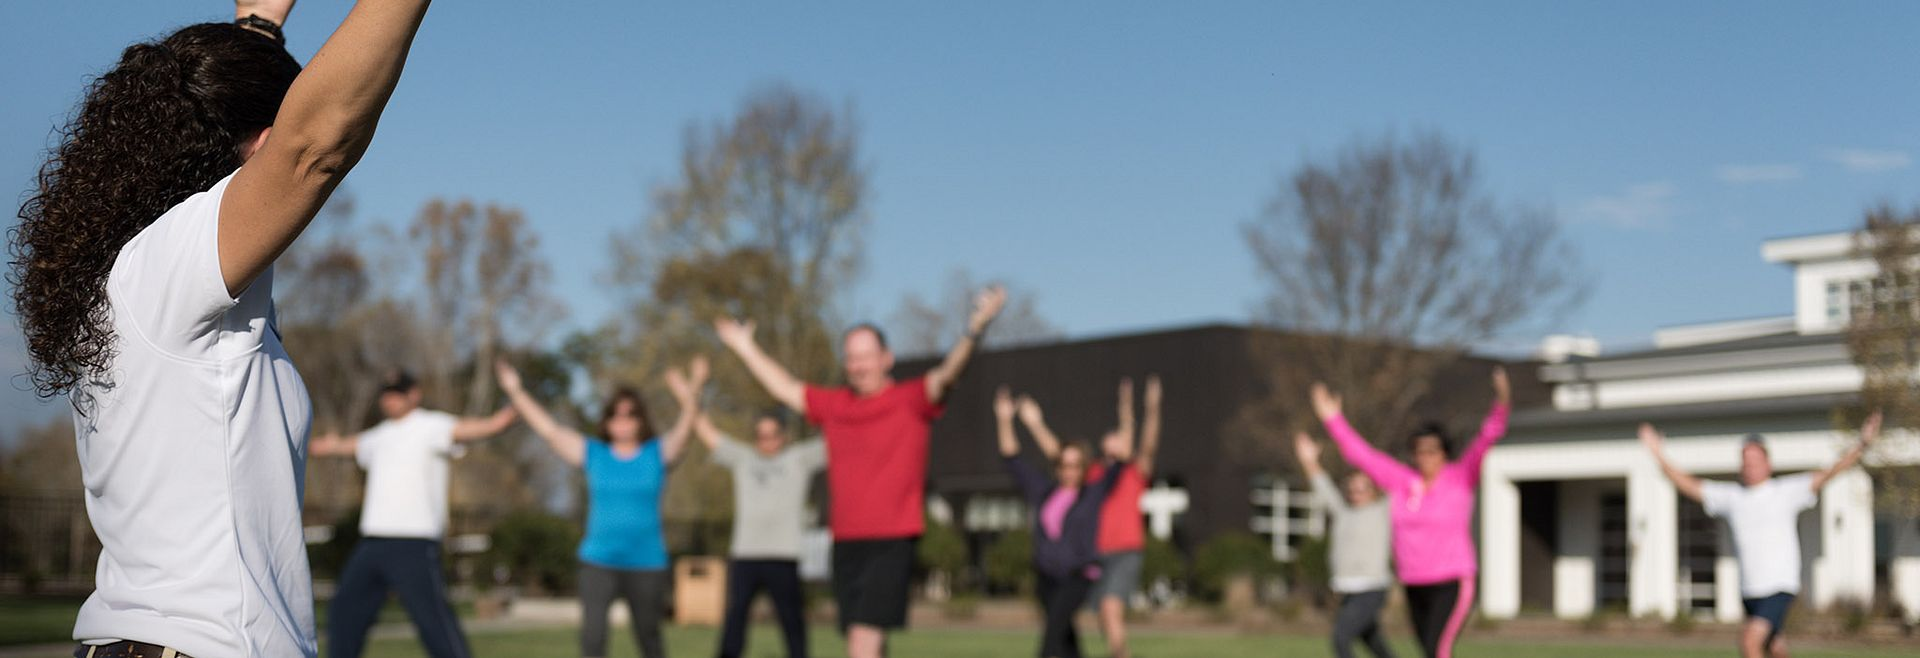 Outdoor Group fitness class with instructor